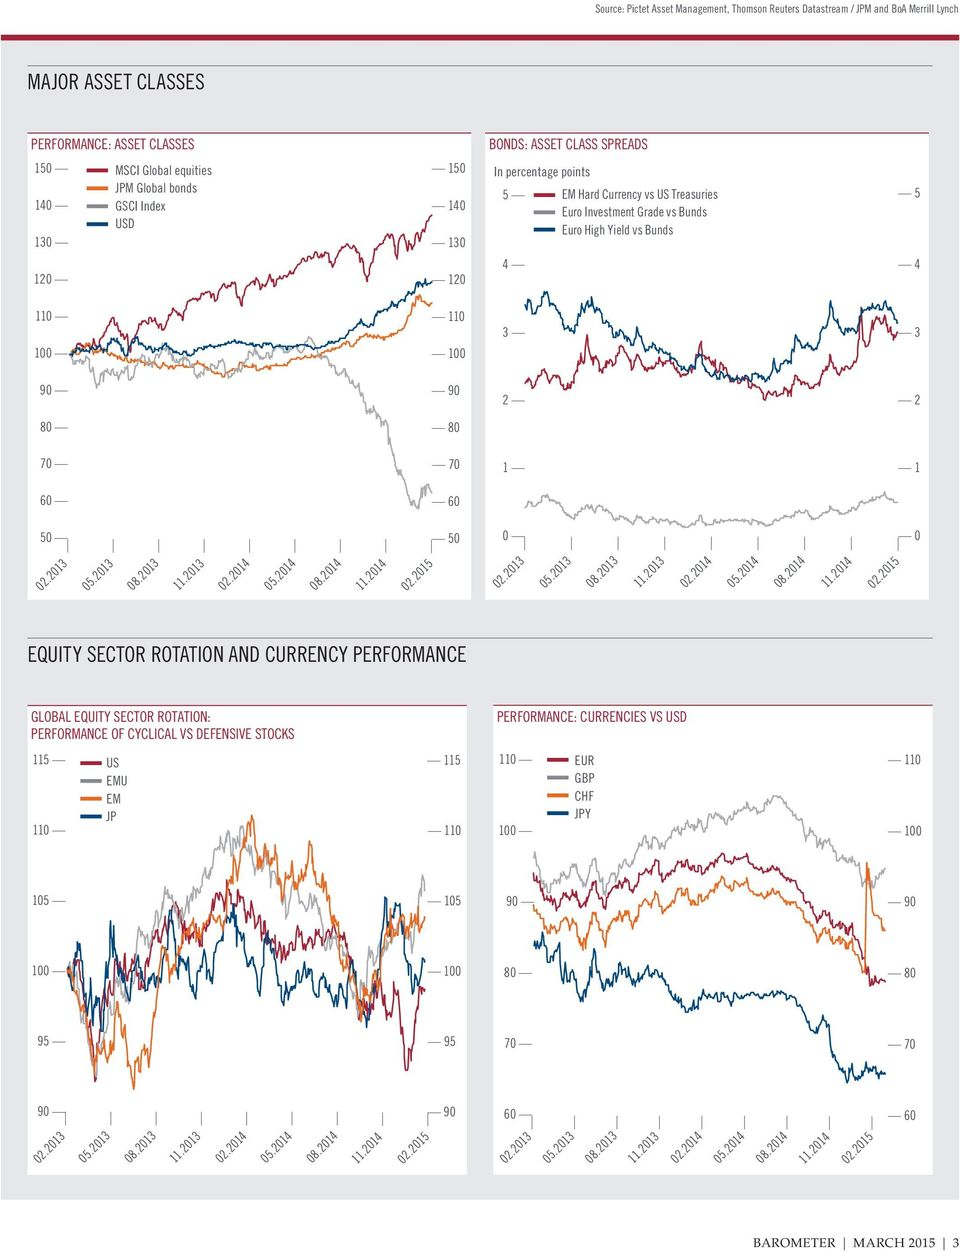 Yield vs Bunds 5 4 11 10 110 100 3 3 9 90 2 2 8 80 7 70 1 1 6 60 5 50 0 EQUITY SECTOR ROTATION AND CURRENCY PERFORMANCE GLOBAL EQUITY SECTOR ROTATION: PERFORMANCE OF